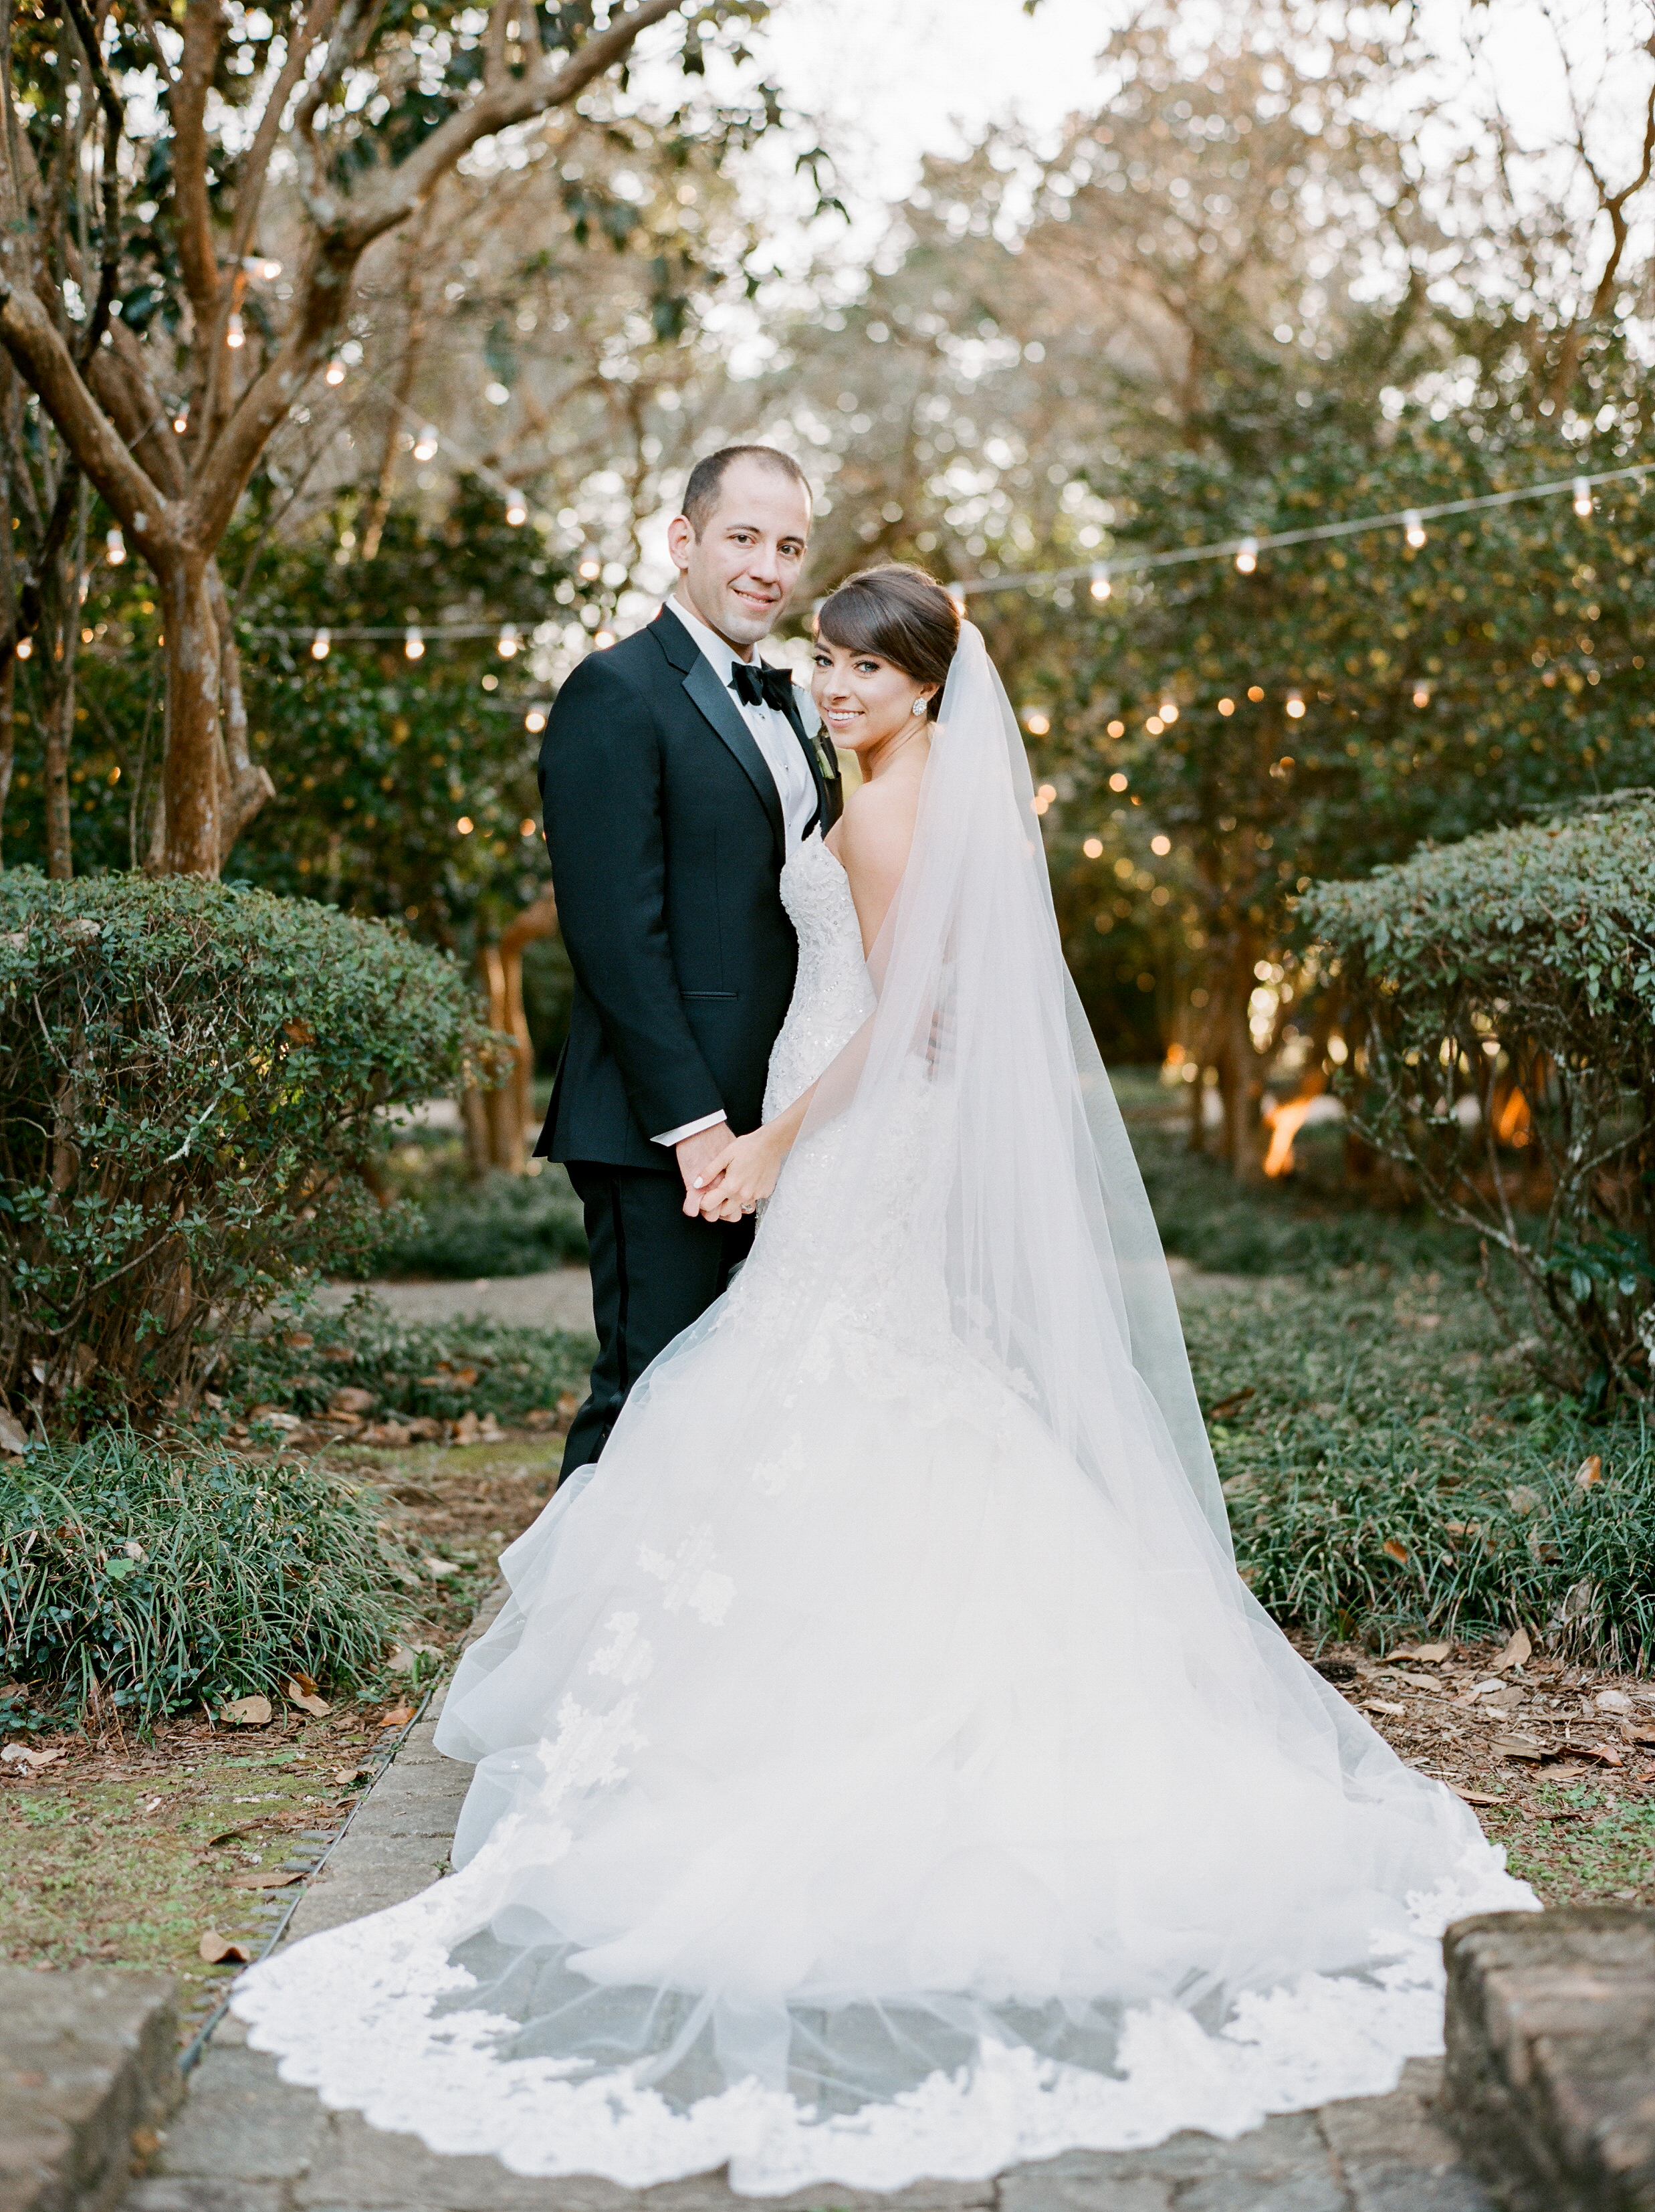 Southern Fete, Southern Wedding, Bride and Groom, Wedding dress details